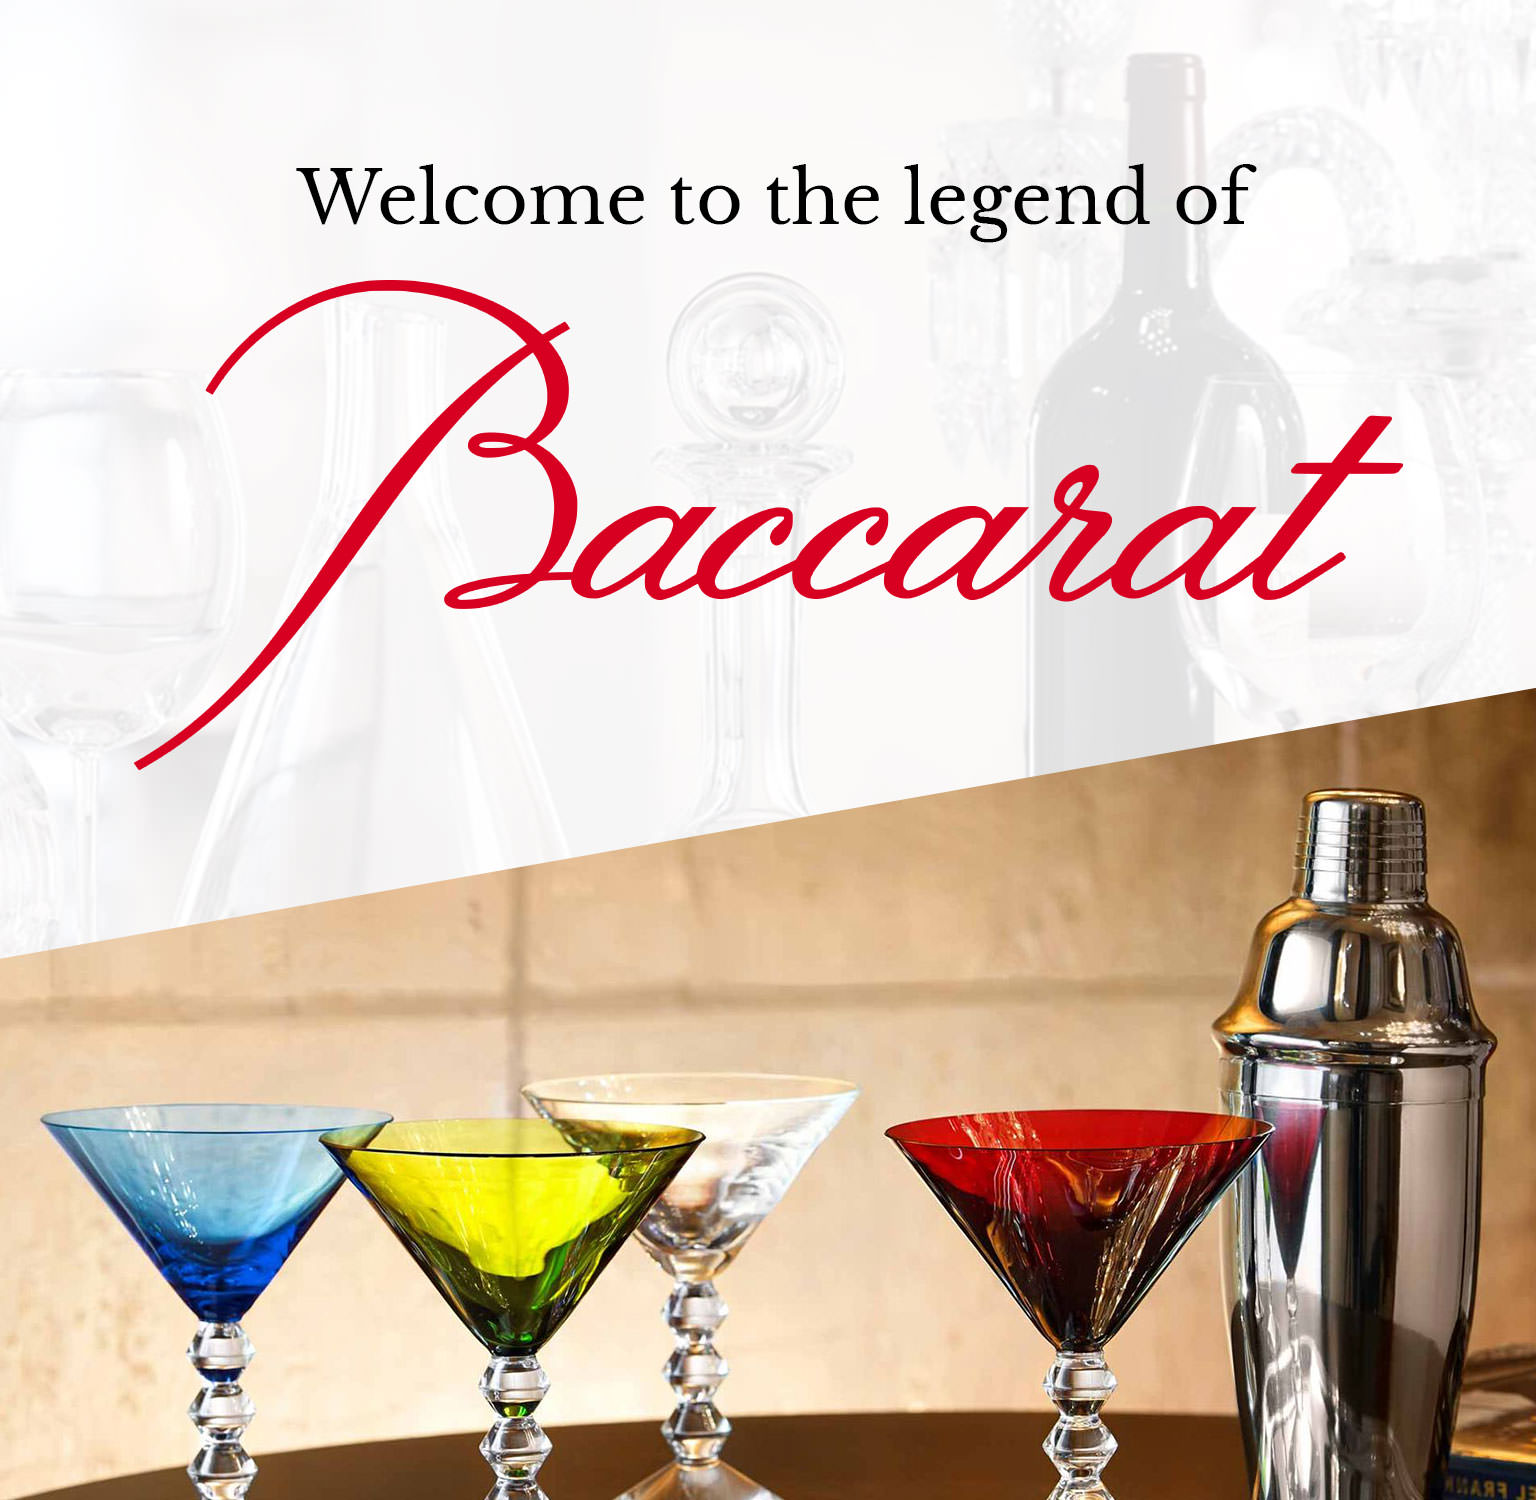 Welcome to the legend of Baccarat